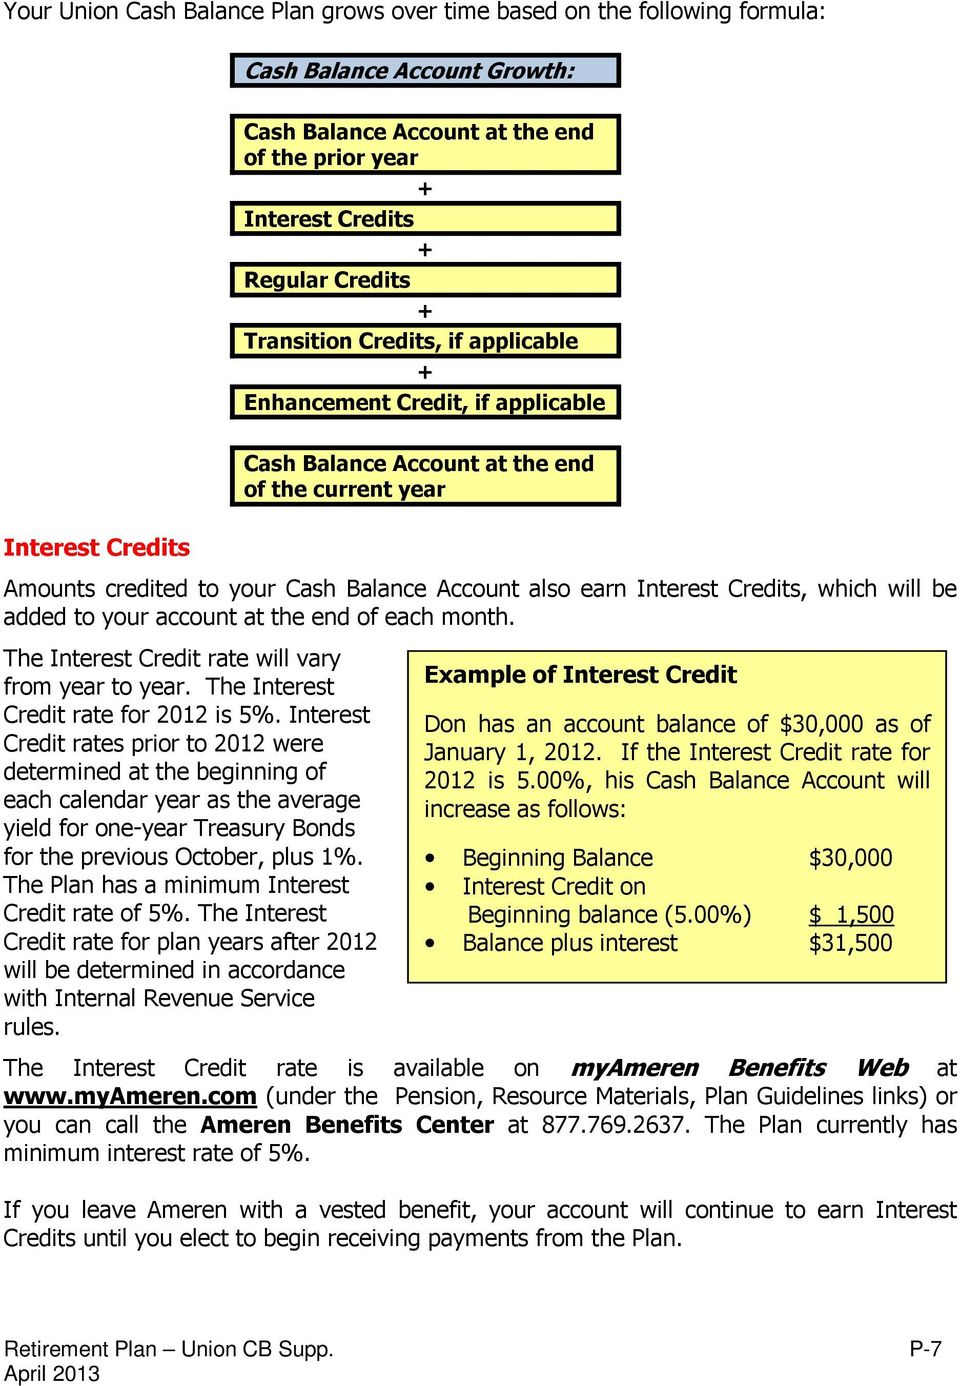 Interest Credits, which will be added to your account at the end of each month. The Interest Credit rate will vary from year to year. The Interest Credit rate for 2012 is 5%.